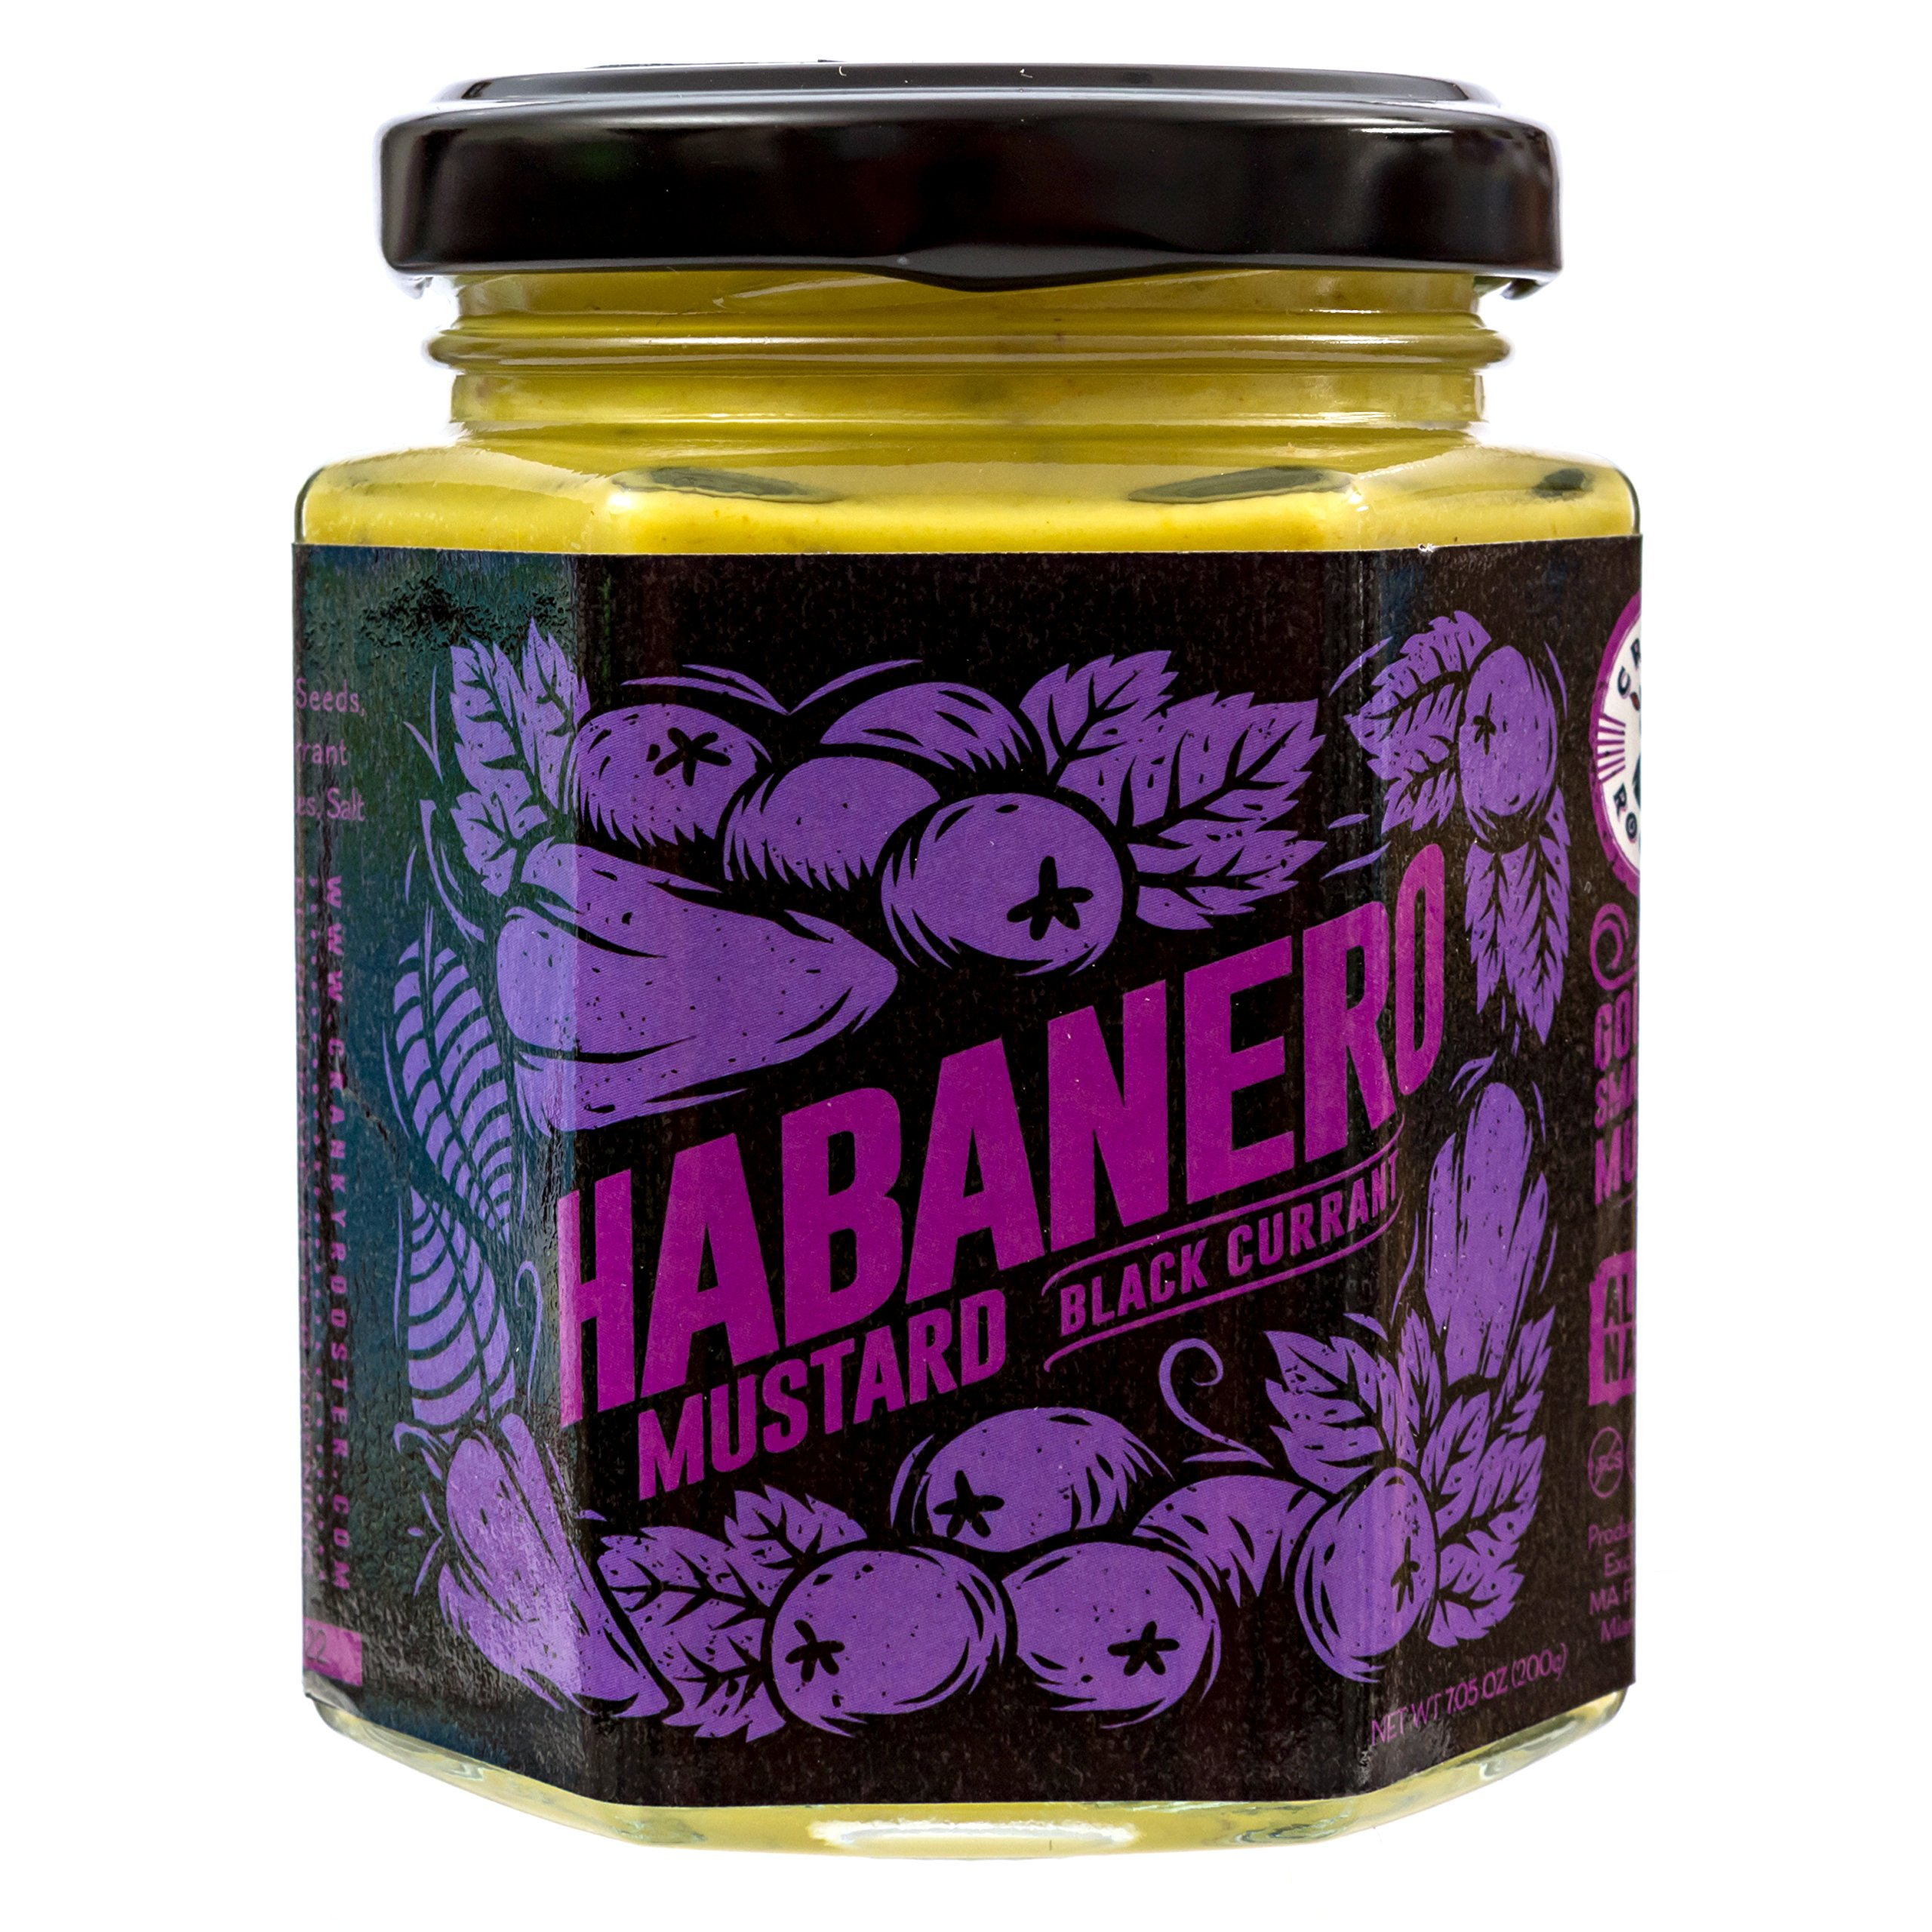 Cranky Rooster Small Batch Spicy Mustard - Habanero/Black Currant - All Natural - No Preservatives